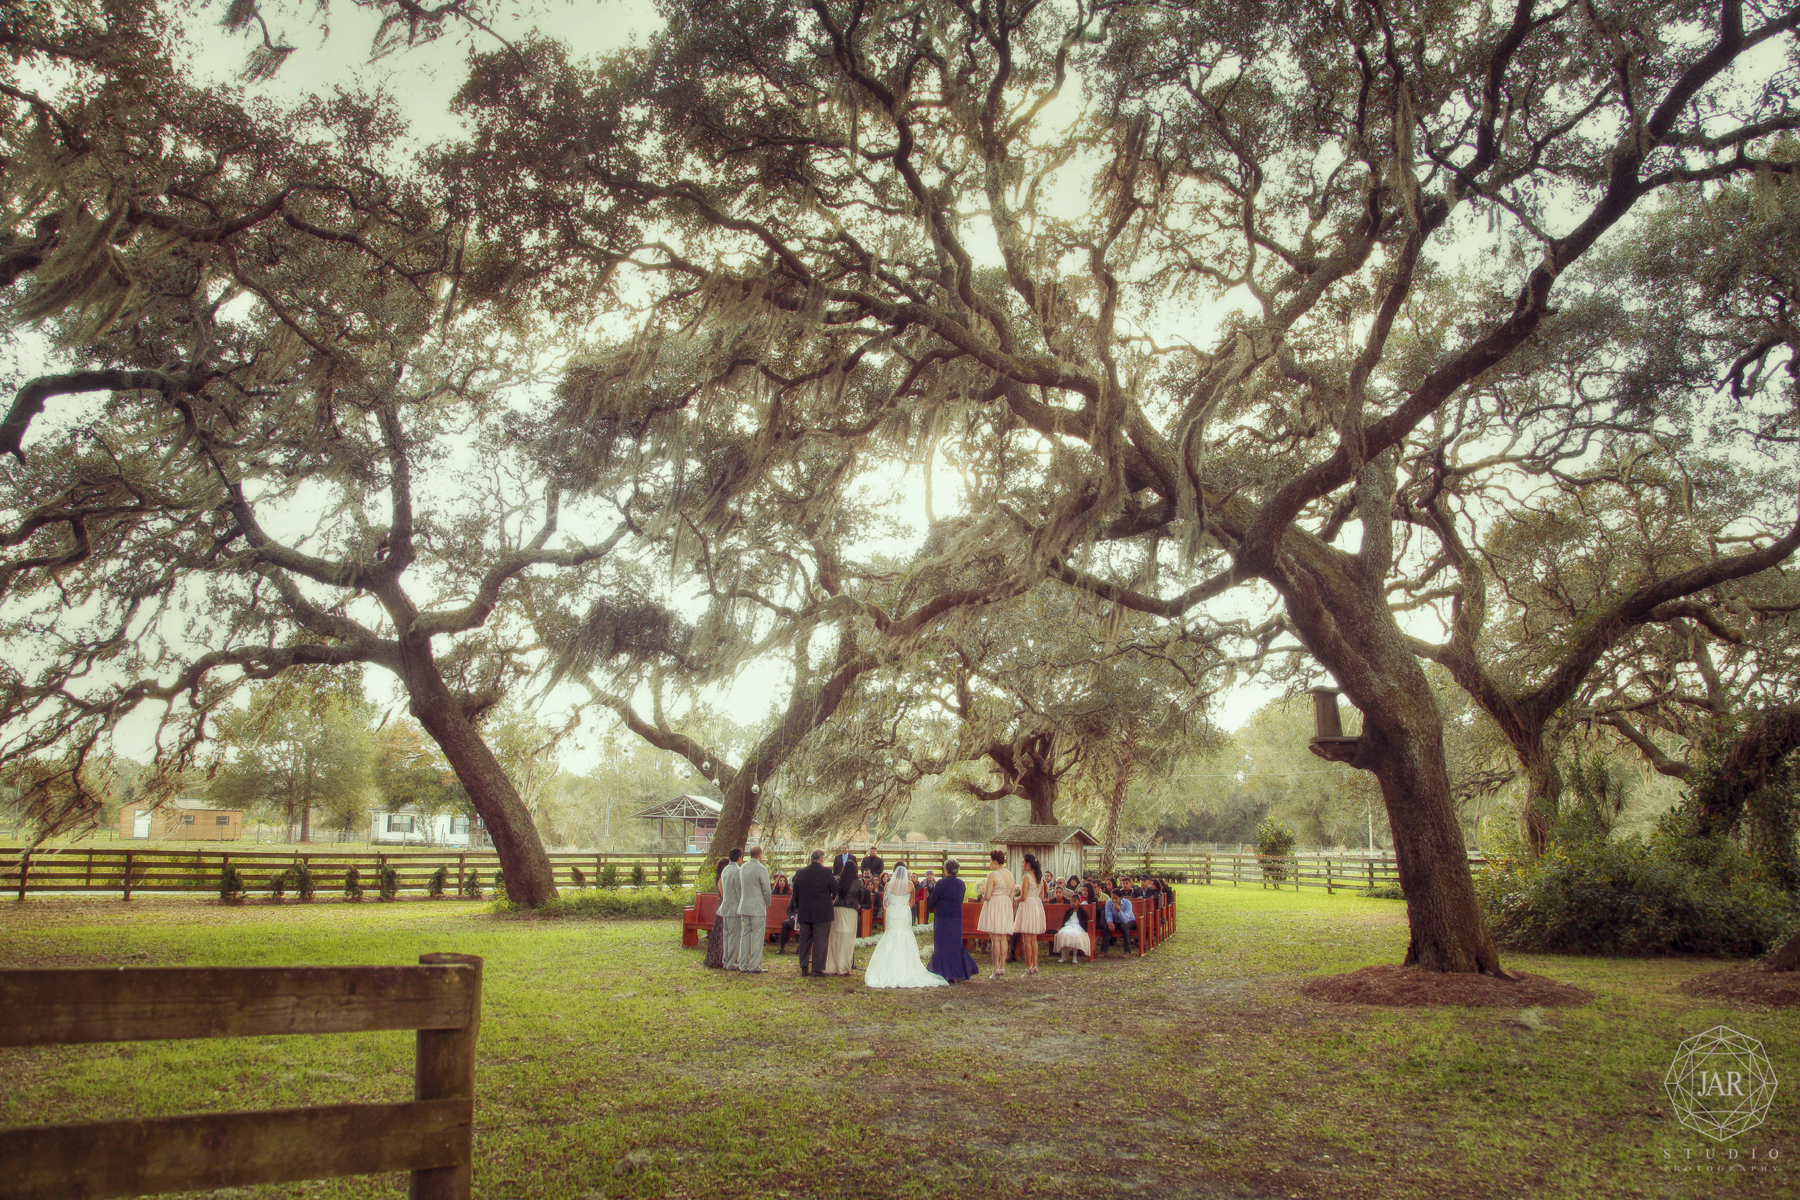 09-wedding-ceremony-orlando-best-beautiful-isola-farms-jarstudio.jpg